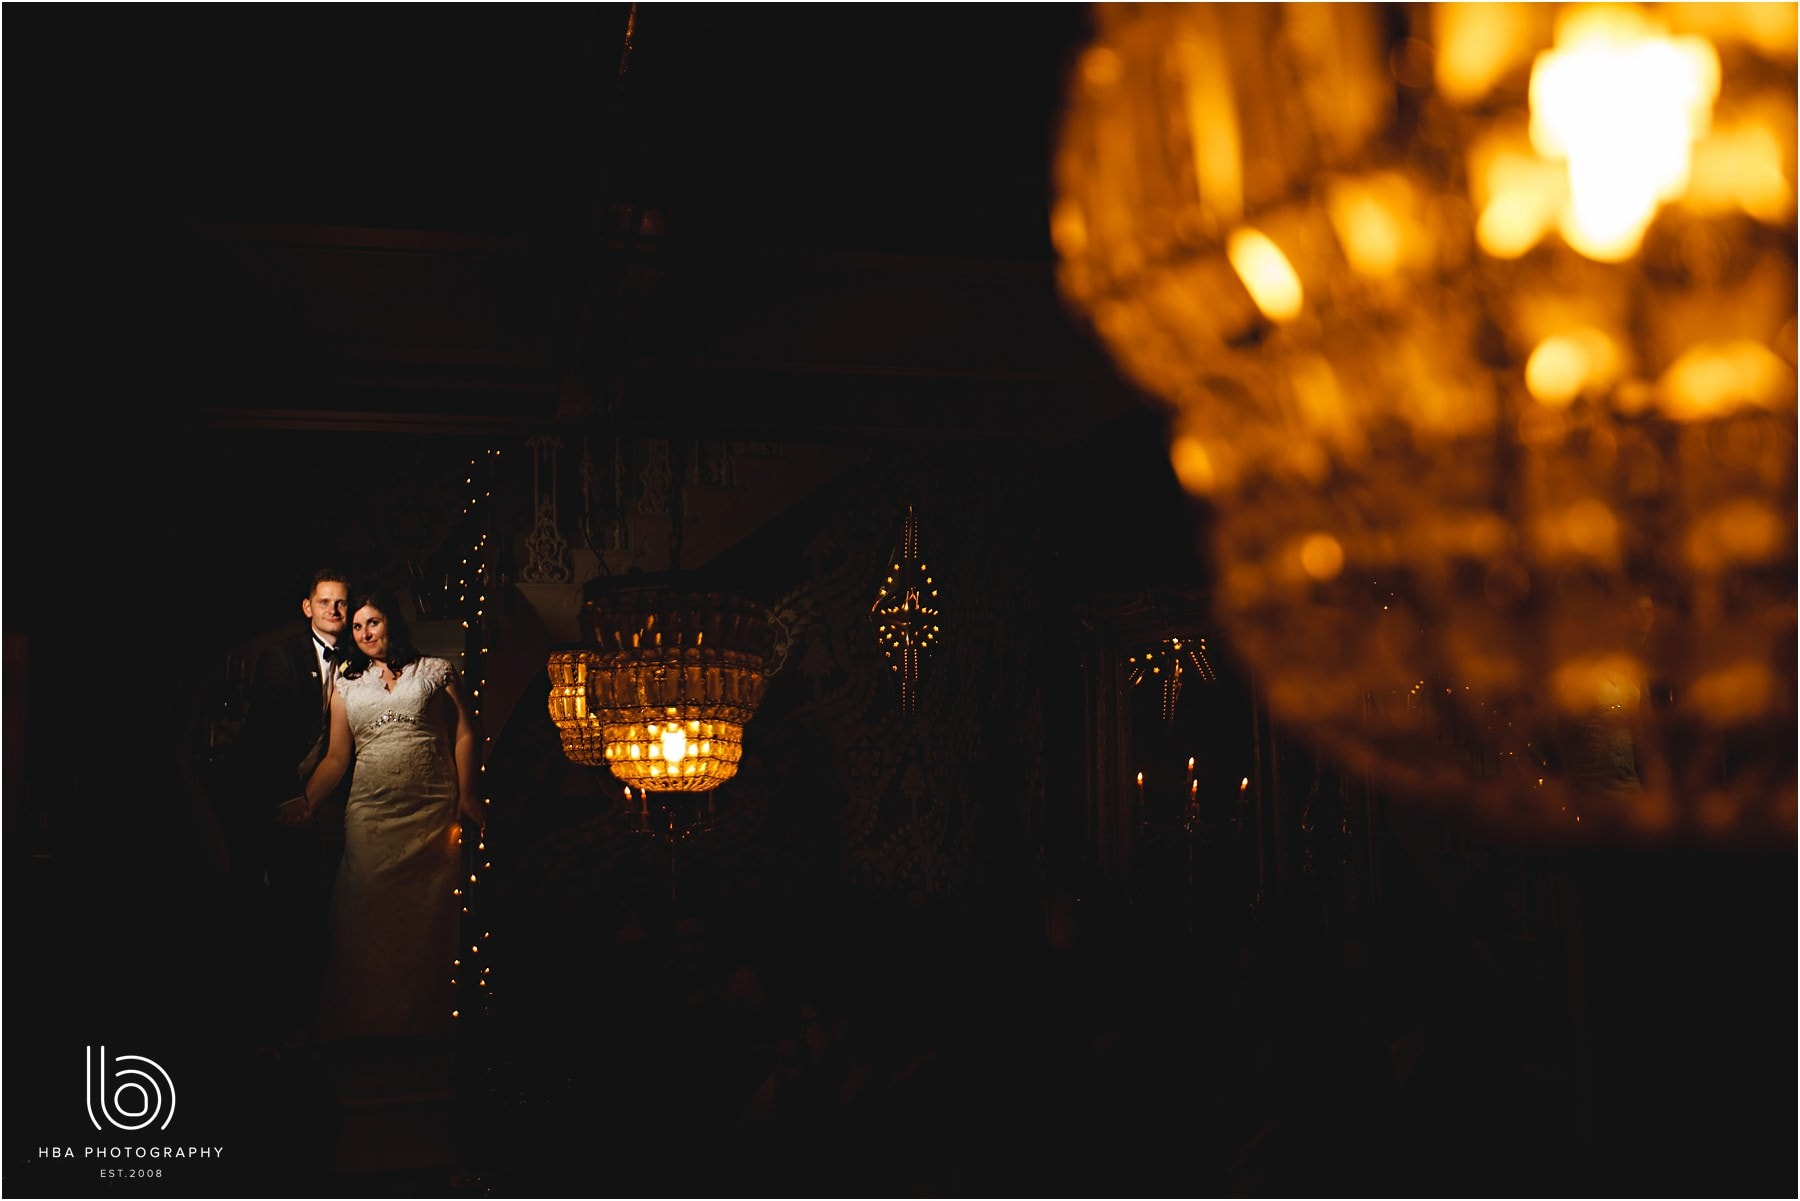 the bride and groom surrounded by big orange lights